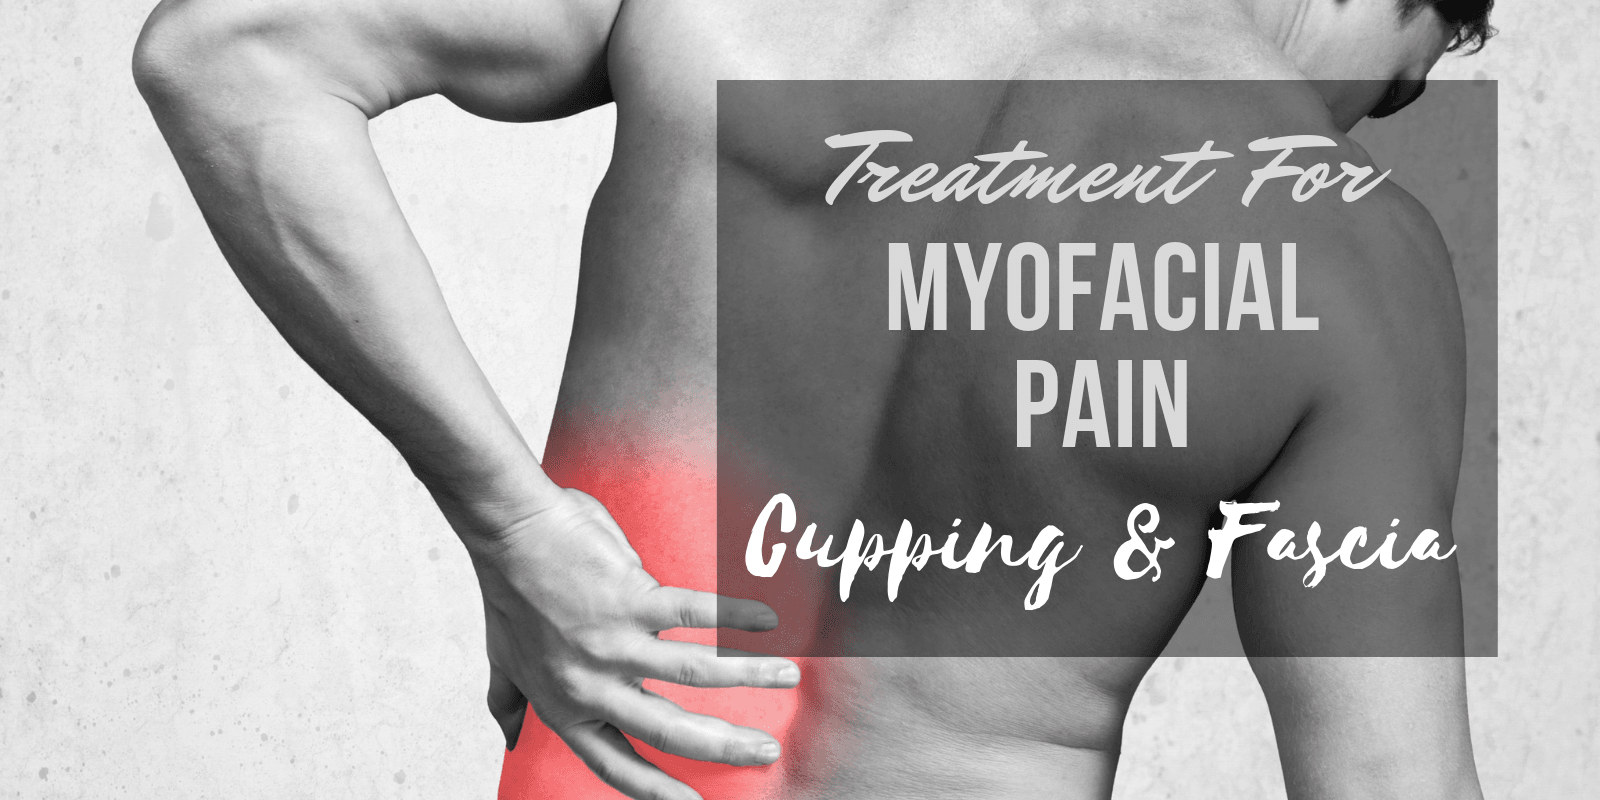 Treatment for Myofascial Pain – Cupping & Fascia - Lure Essentials